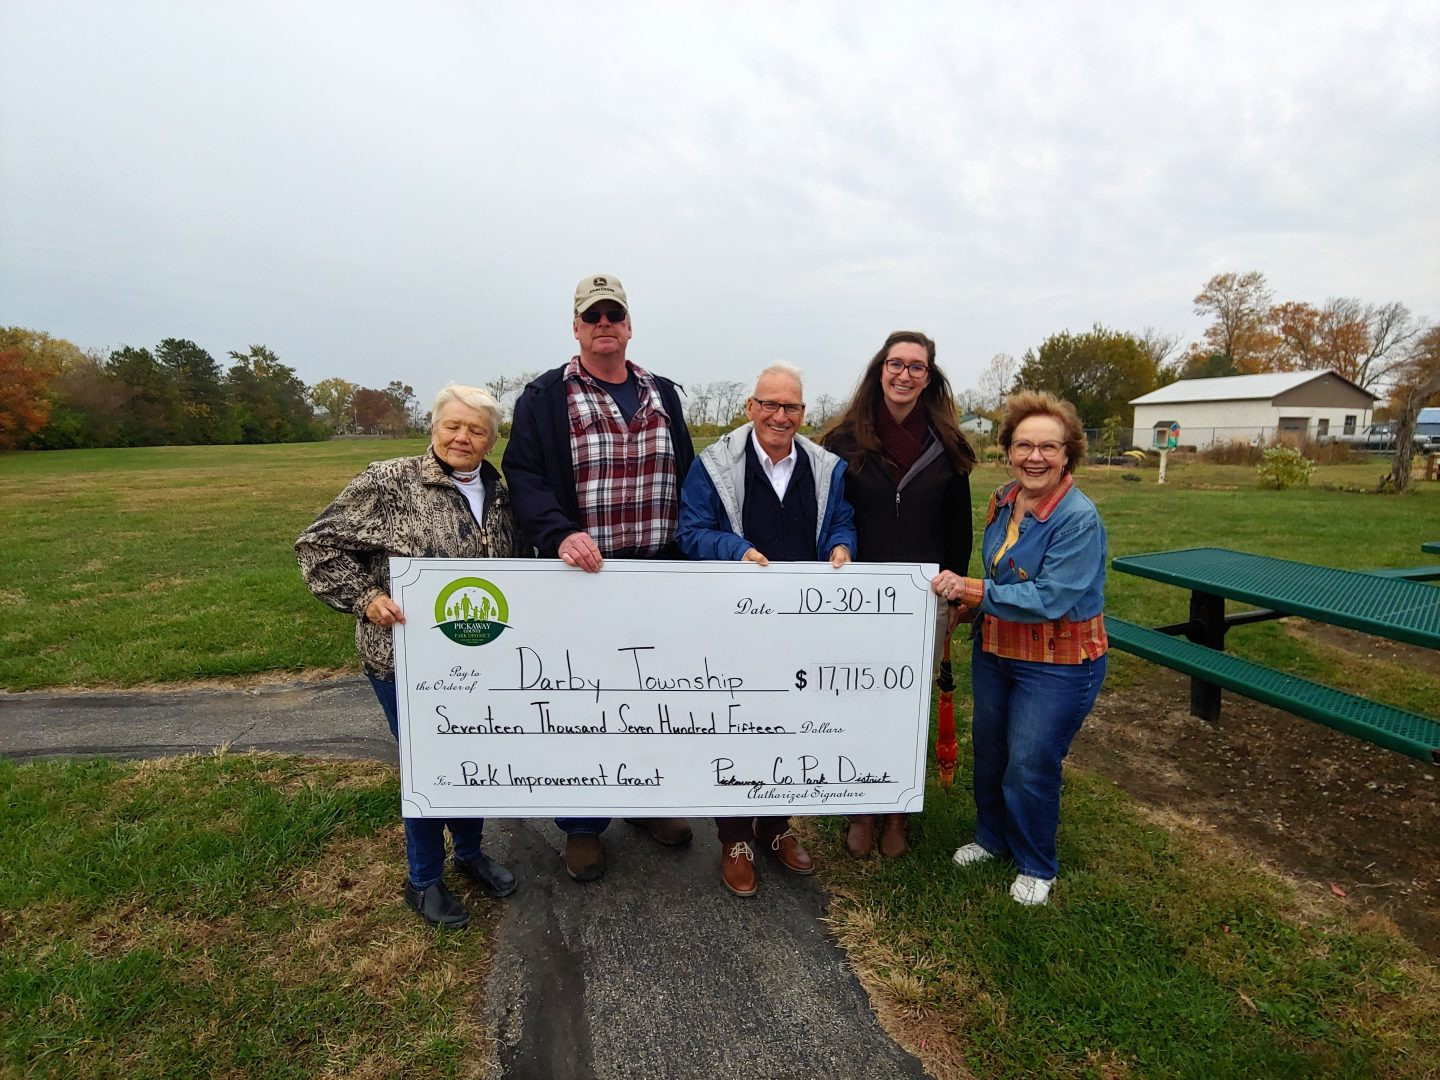 2019 Grant to Darby Township for Darby Township Park for a walking path and pollinator area